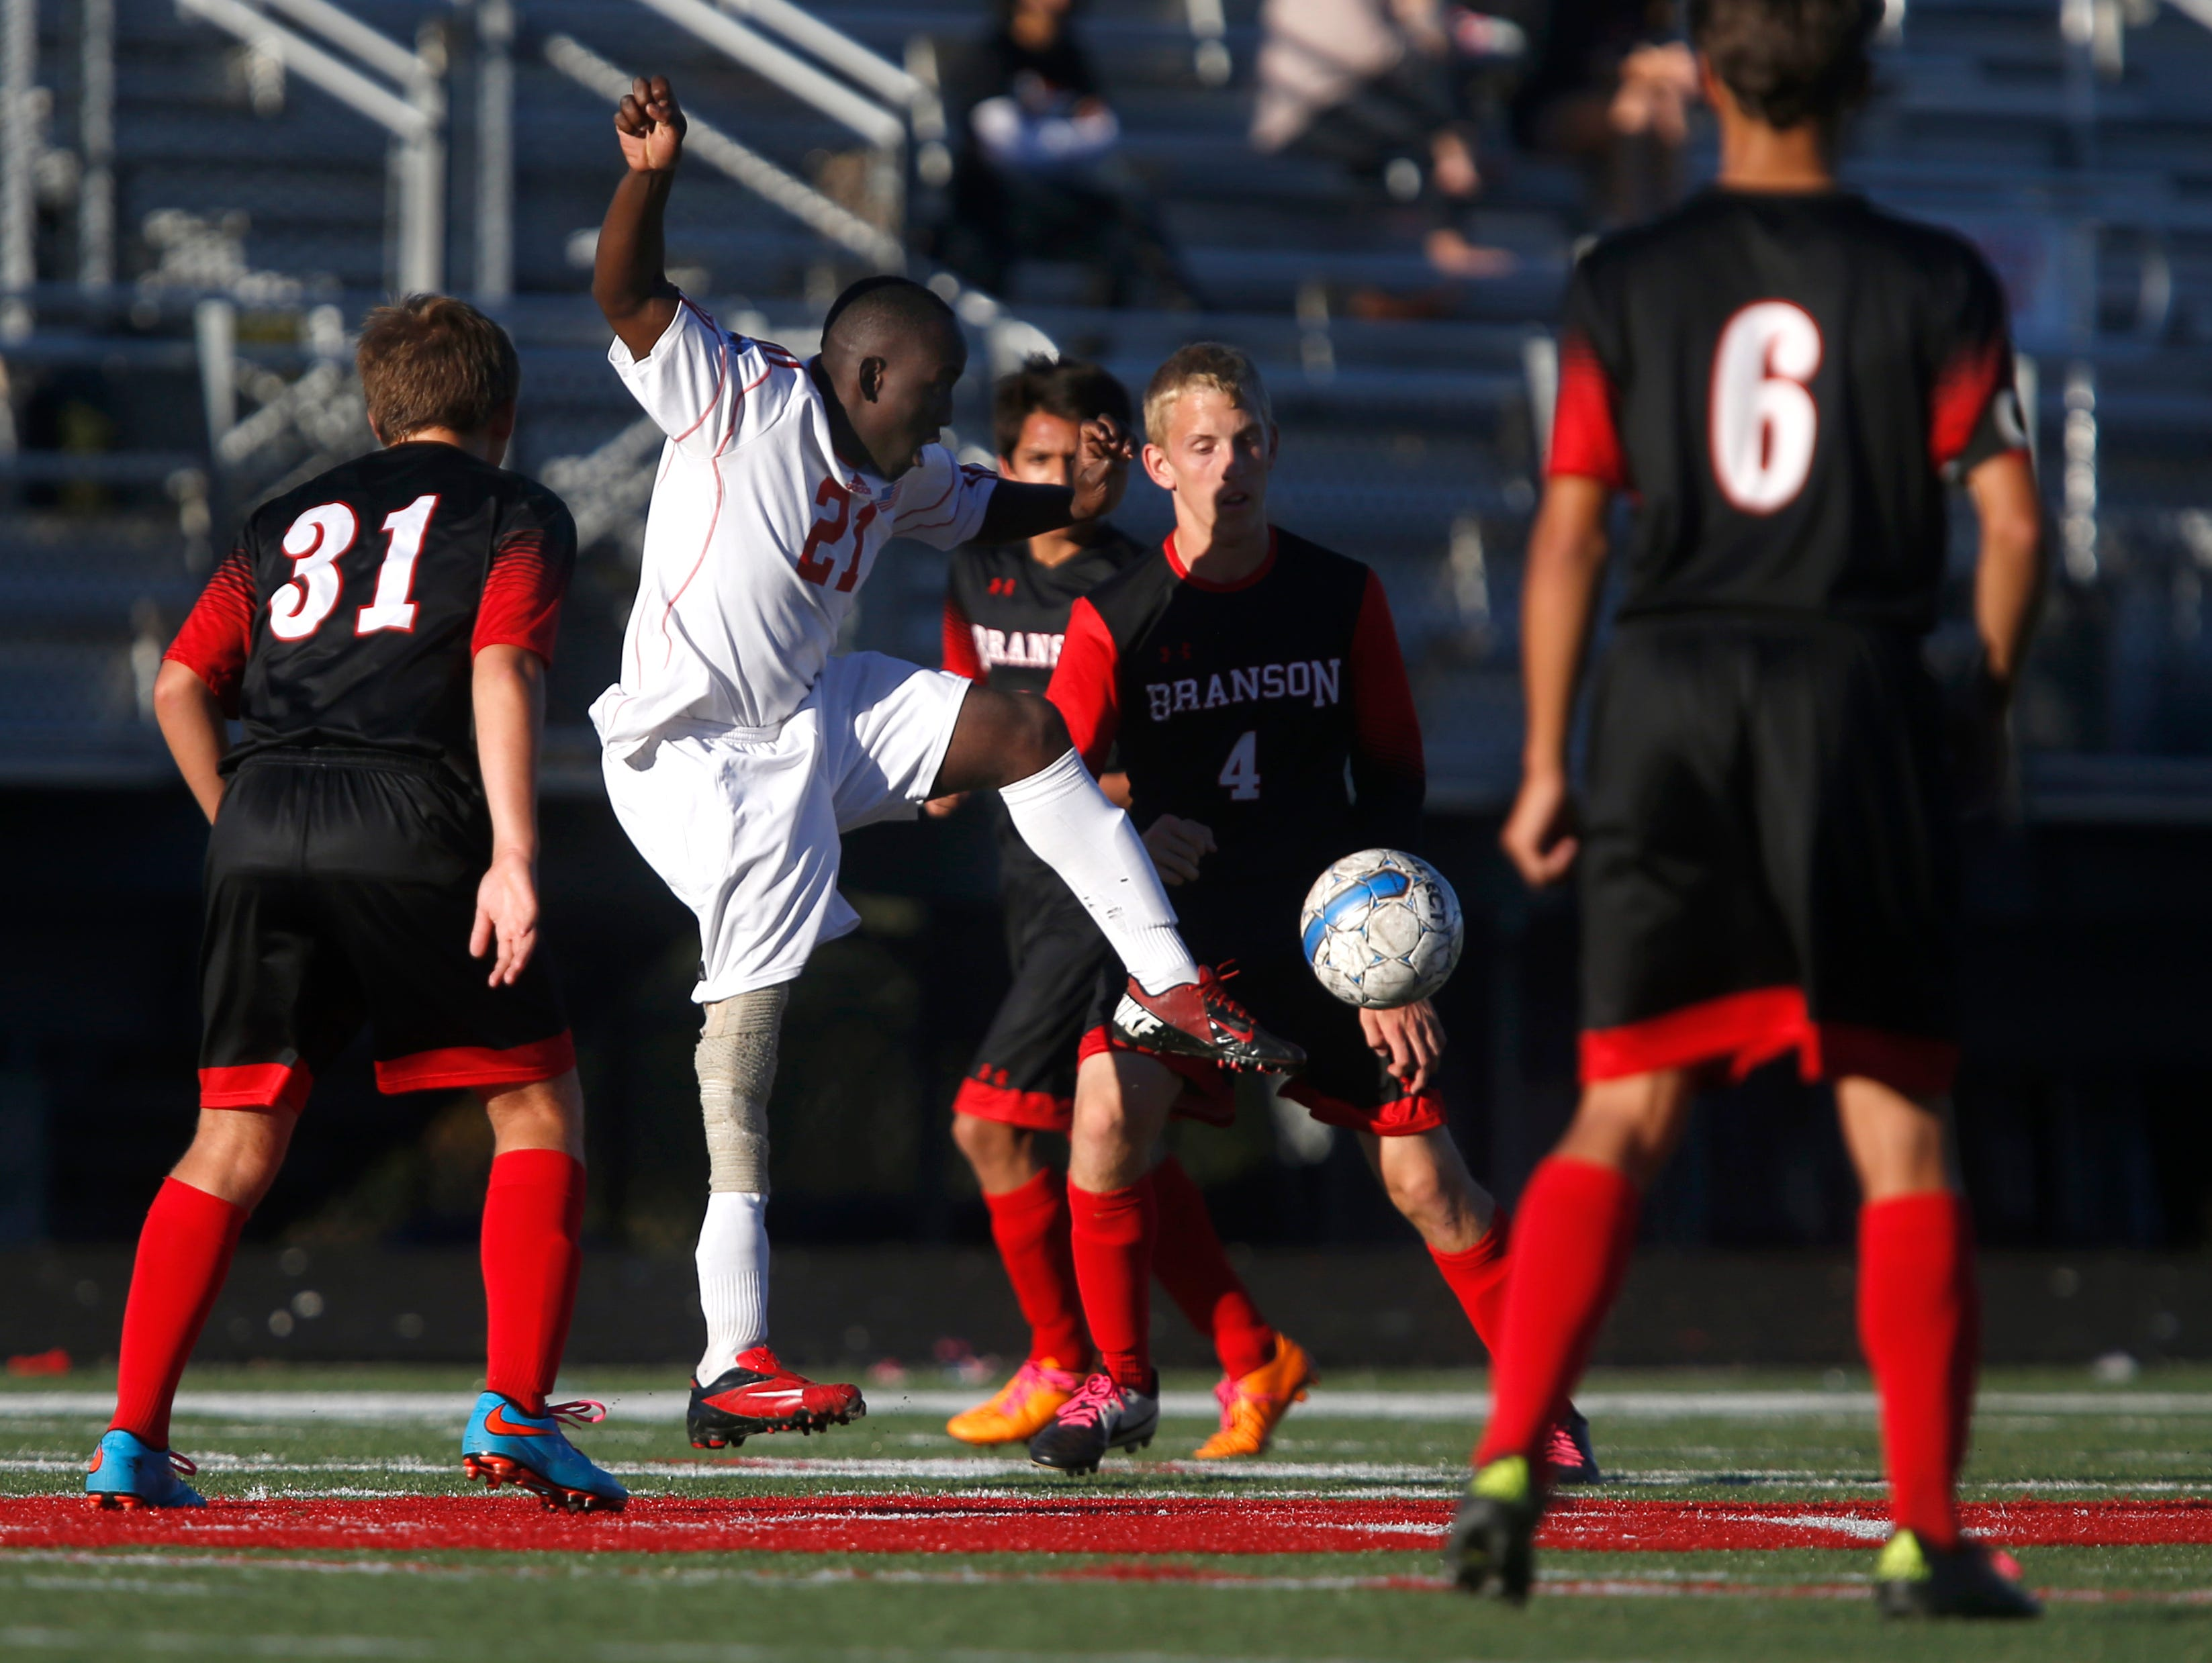 Glendale senior David Odun-Ayo kicks the ball with his left leg during a soccer game against Branson on Tuesday, Oct. 13, 2015. Odun-Ayo, who was born with proximal femoral focal deficiency, and is missing part of his right leg, runs and walks with a prosthetic leg is playing organized soccer for the first time.